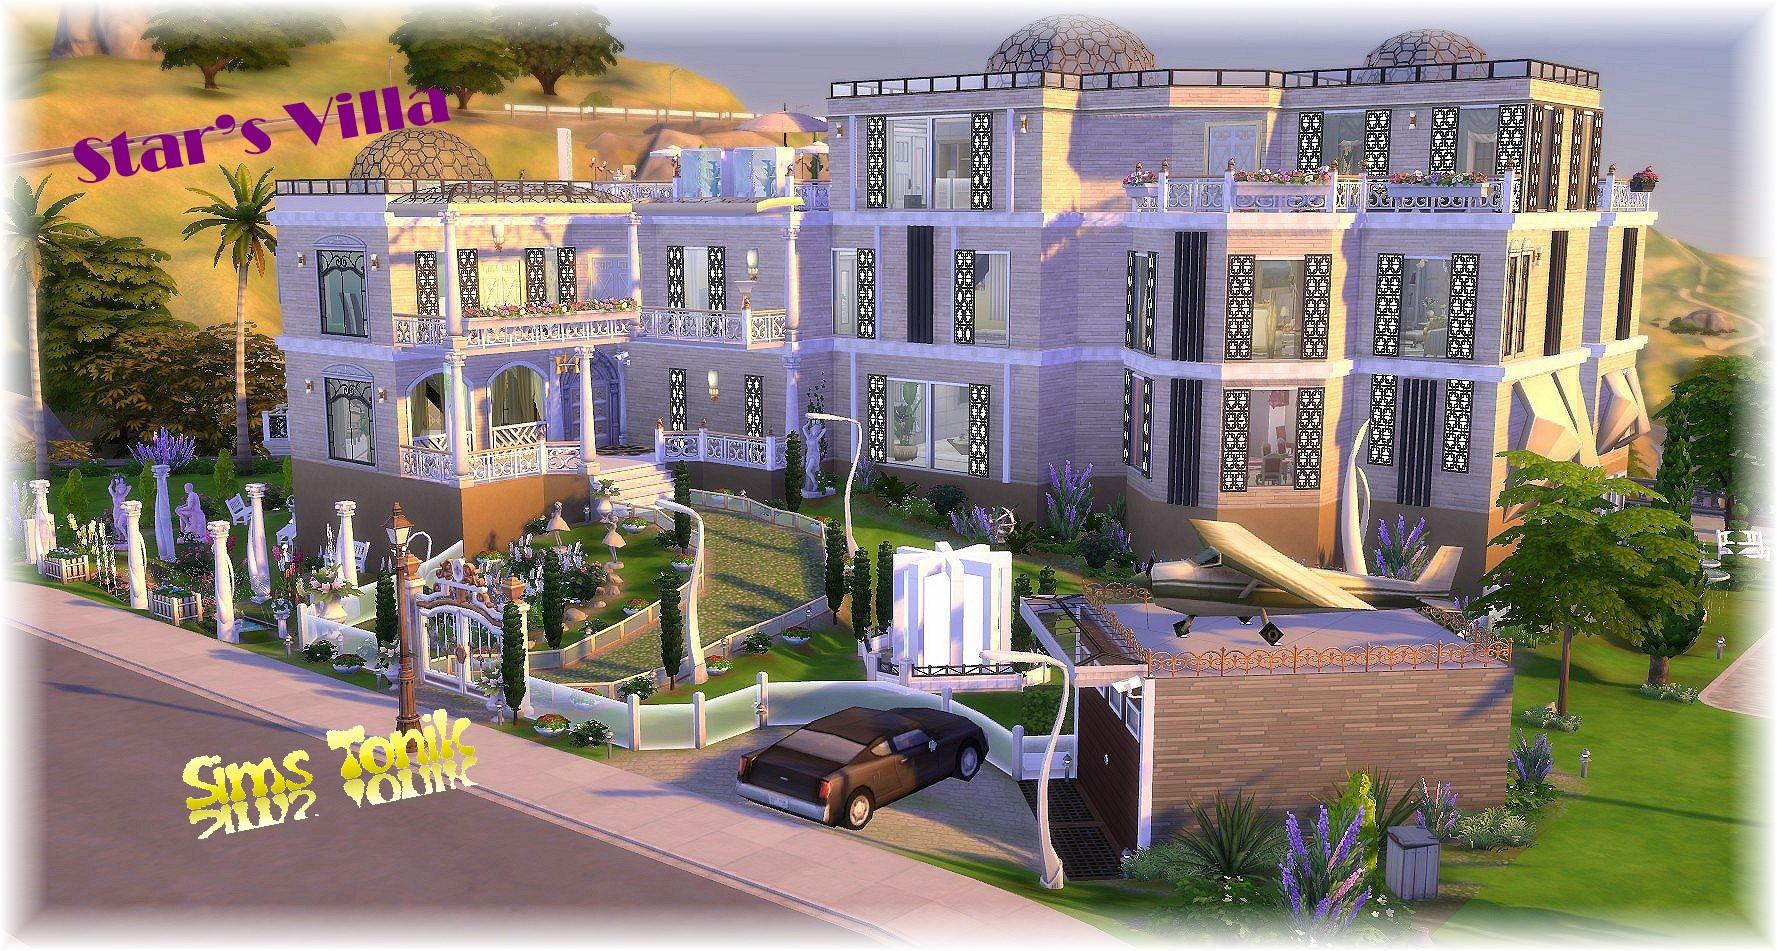 Maisons Star S Villa Vos Creations Sims 4 Luniversims